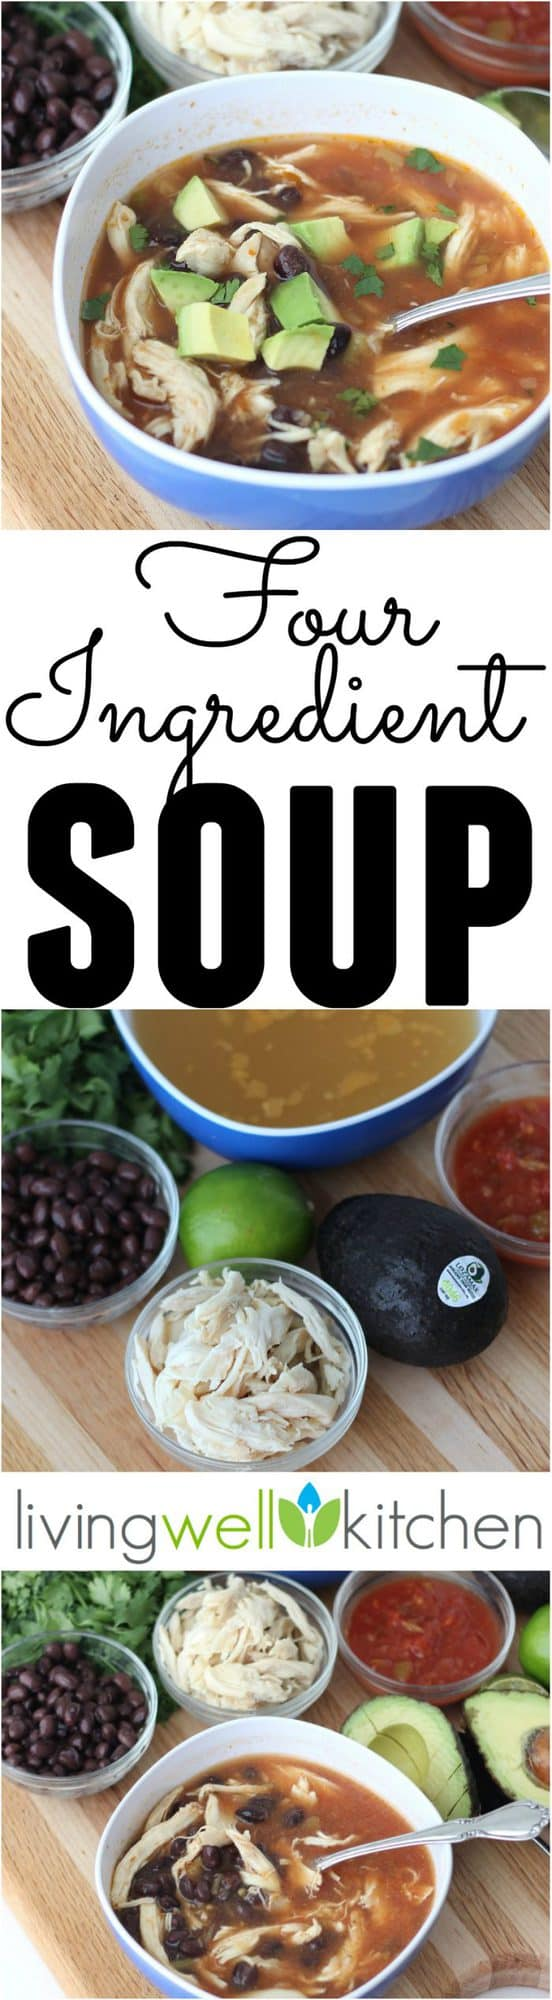 A four ingredient soup recipe that is ready in minutes! It takes just four ingredients and less than 5 minutes to make this delicious and filling soup great for any meal. Gluten free, dairy free and easily made vegan